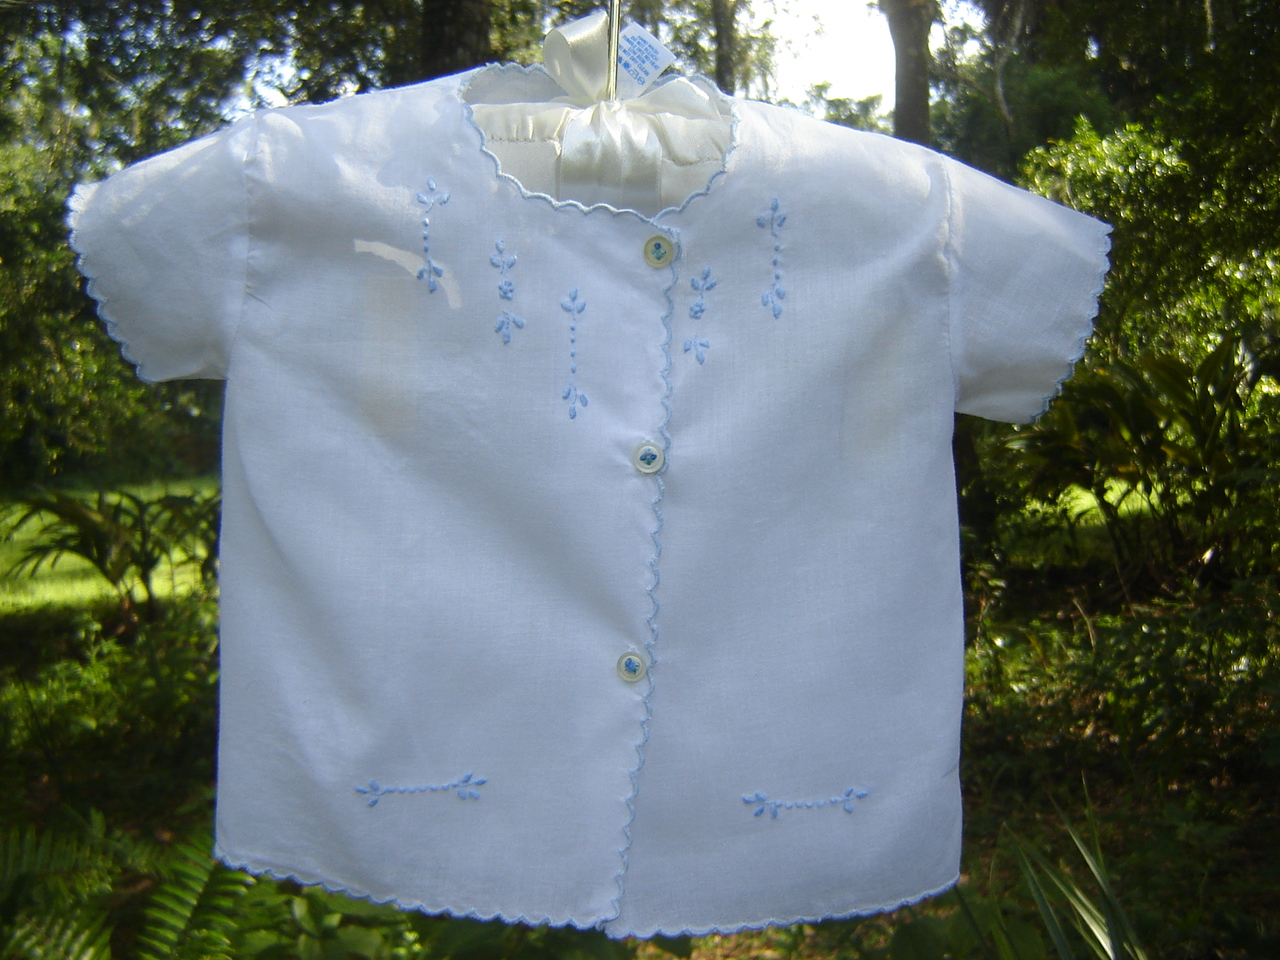 #80 Hand Embroidered Diaper Shirt, 3 months, $10. Easy care fabric, mother-of-pearl buttons, worn a few times but in perfect condition. More photos and info are posted here.